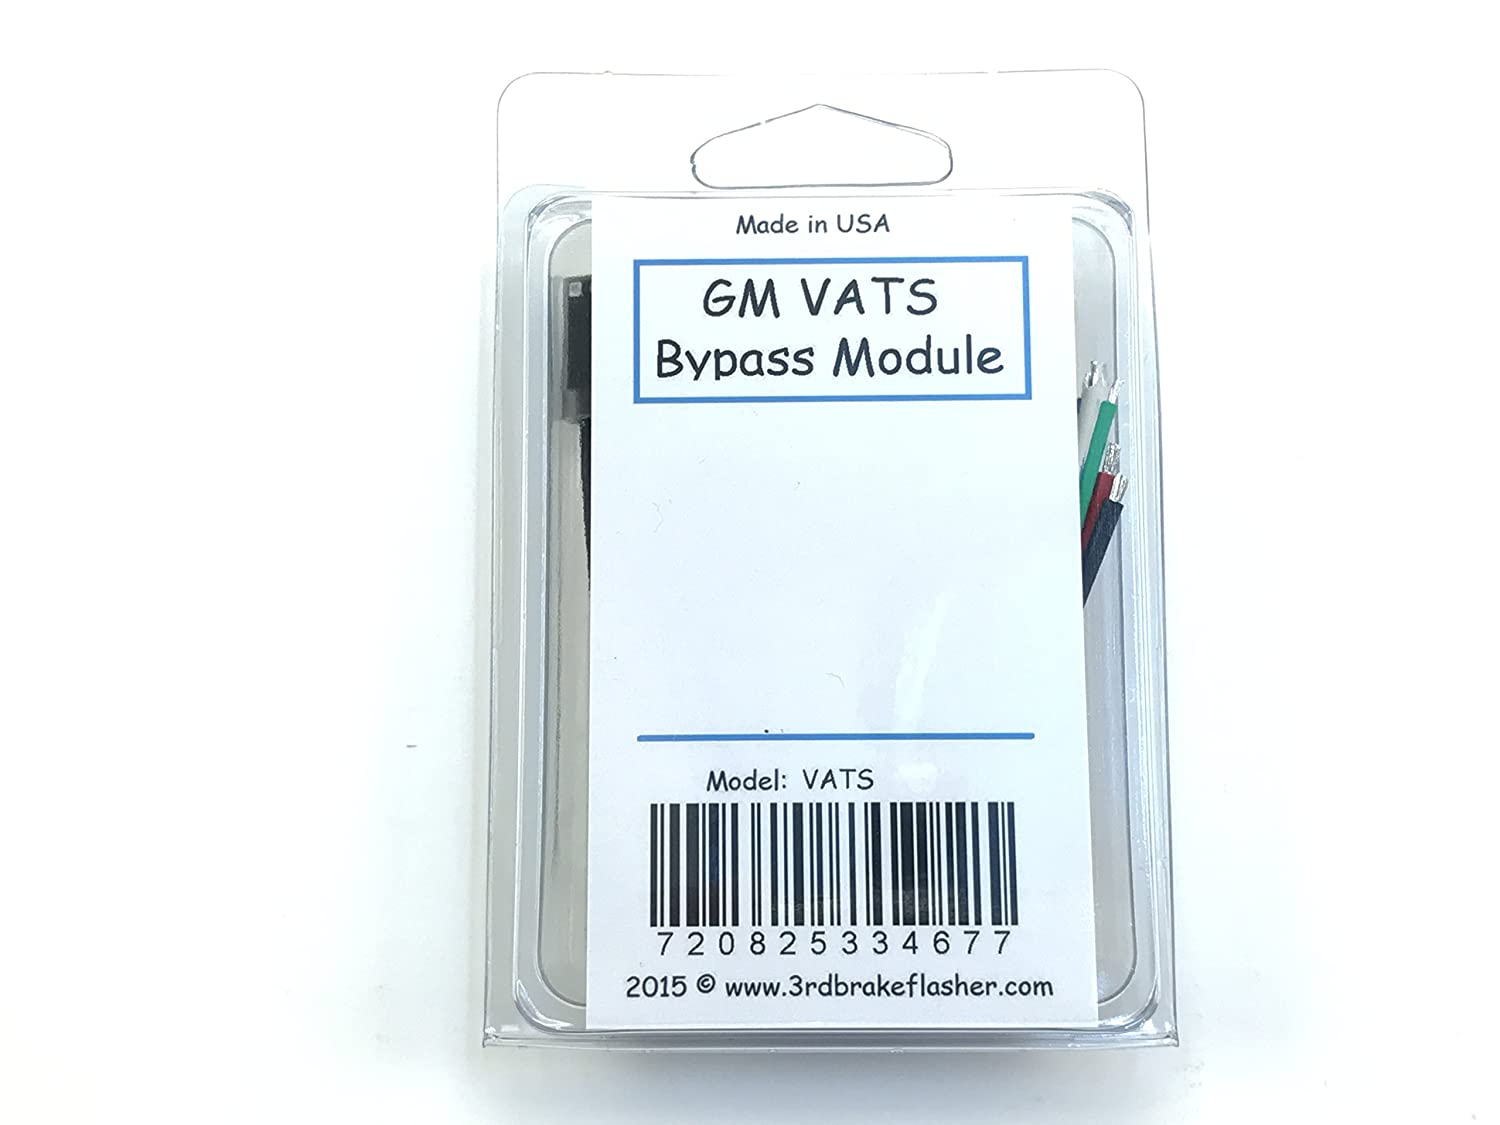 Amazon gm vats passkey ii bypass module for ls1 and lt1 amazon gm vats passkey ii bypass module for ls1 and lt1 painless automotive pooptronica